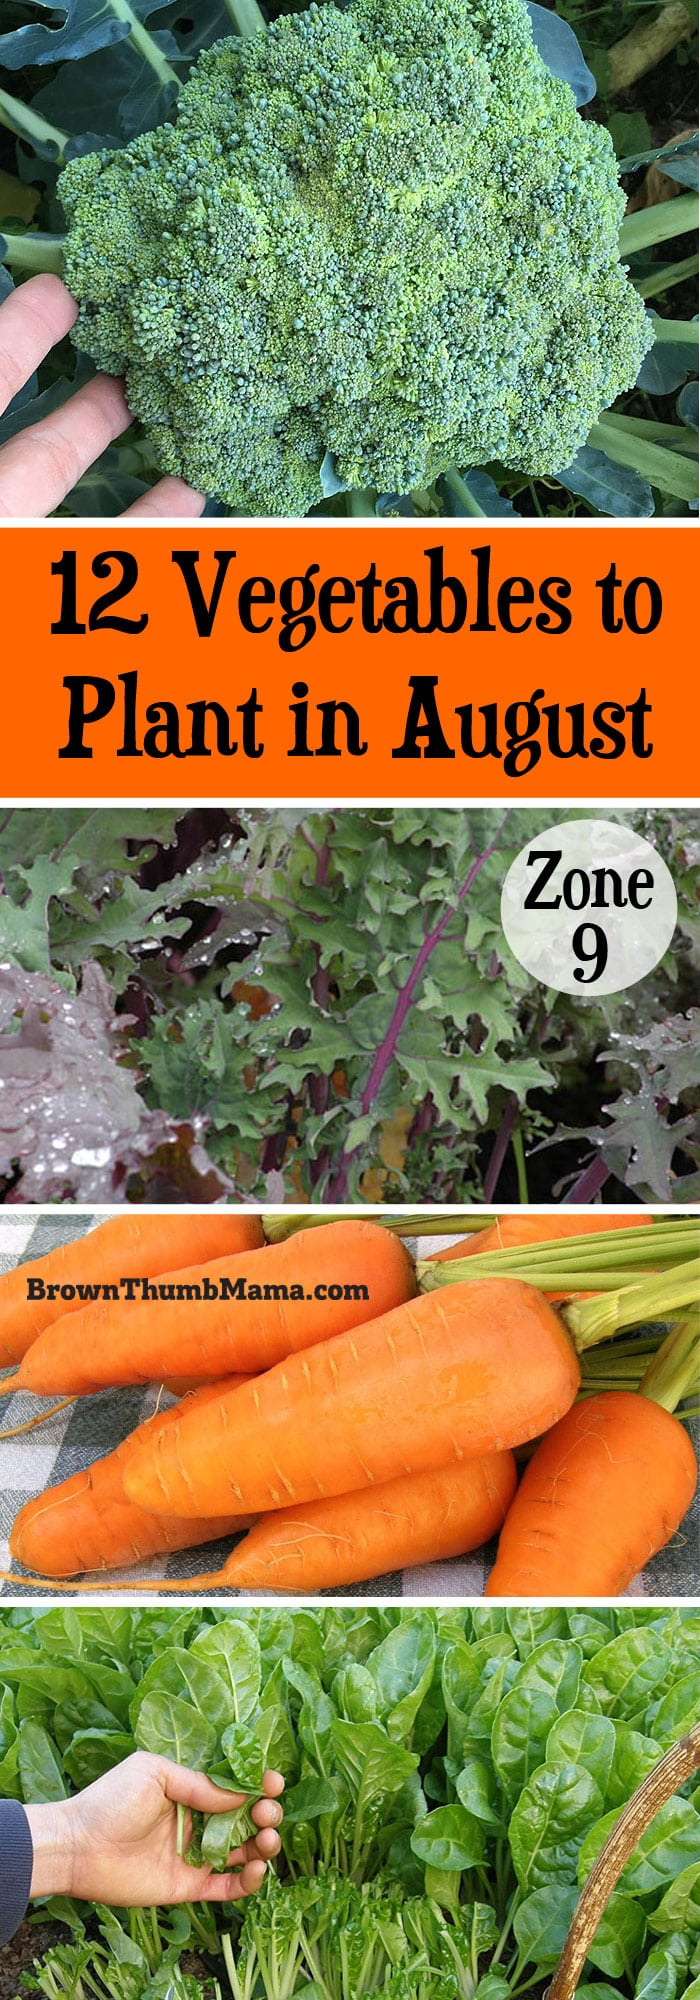 Plant These 12 Vegetables In August For A Tasty Harvest This Fall Includes Recommended Varieties